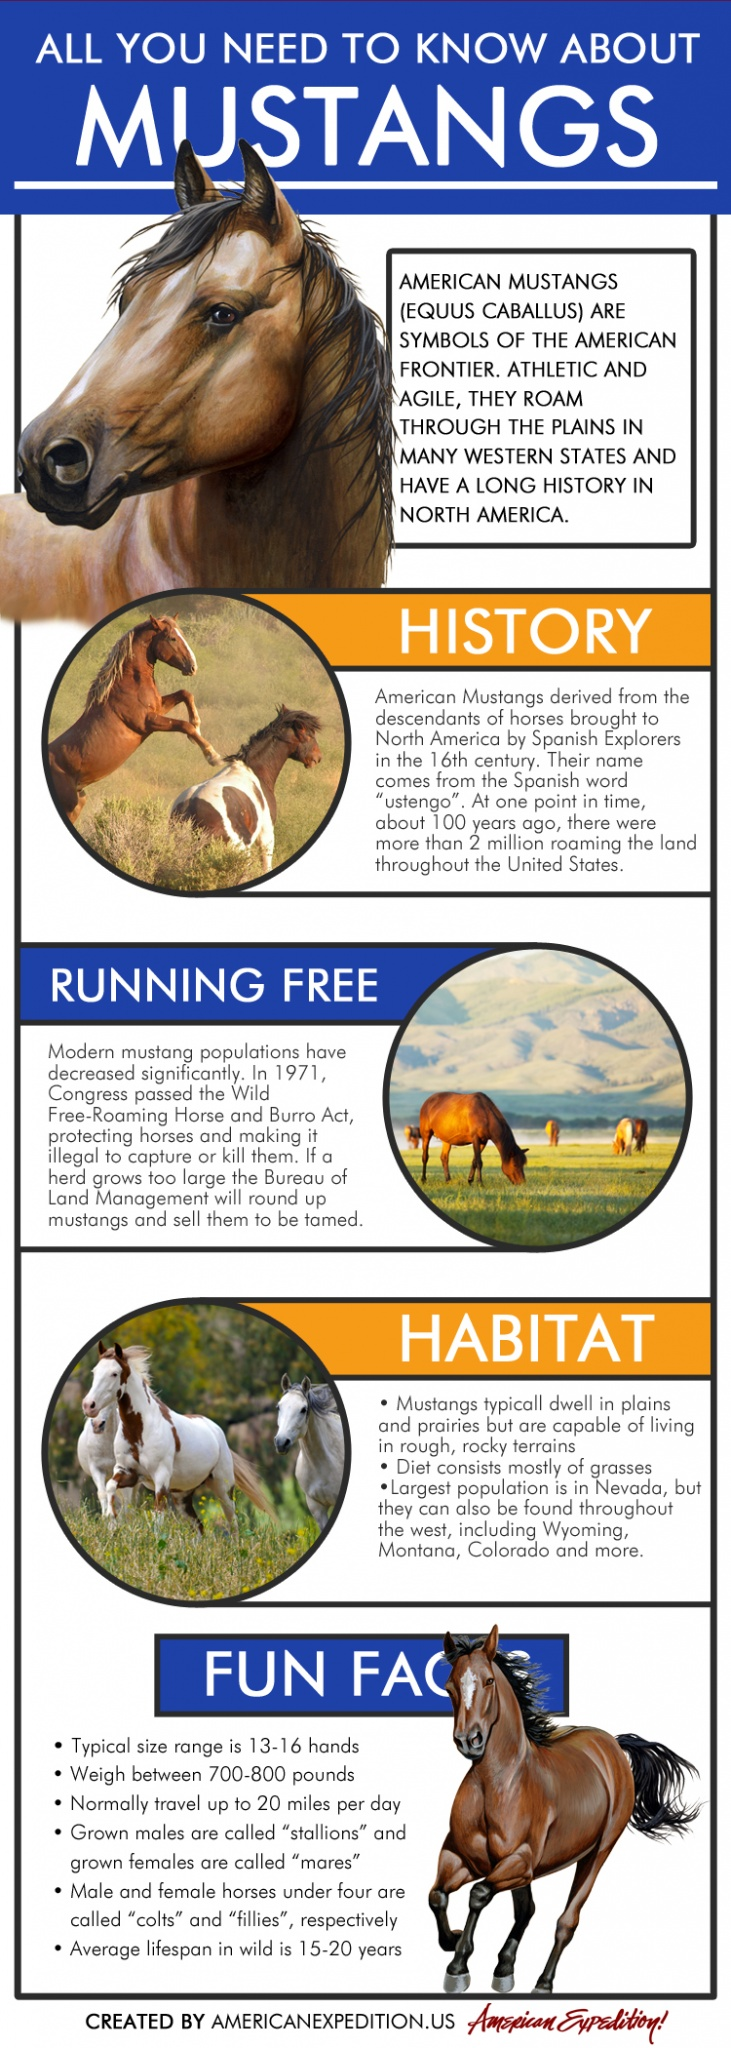 All You Need to Know About Mustangs Infographic